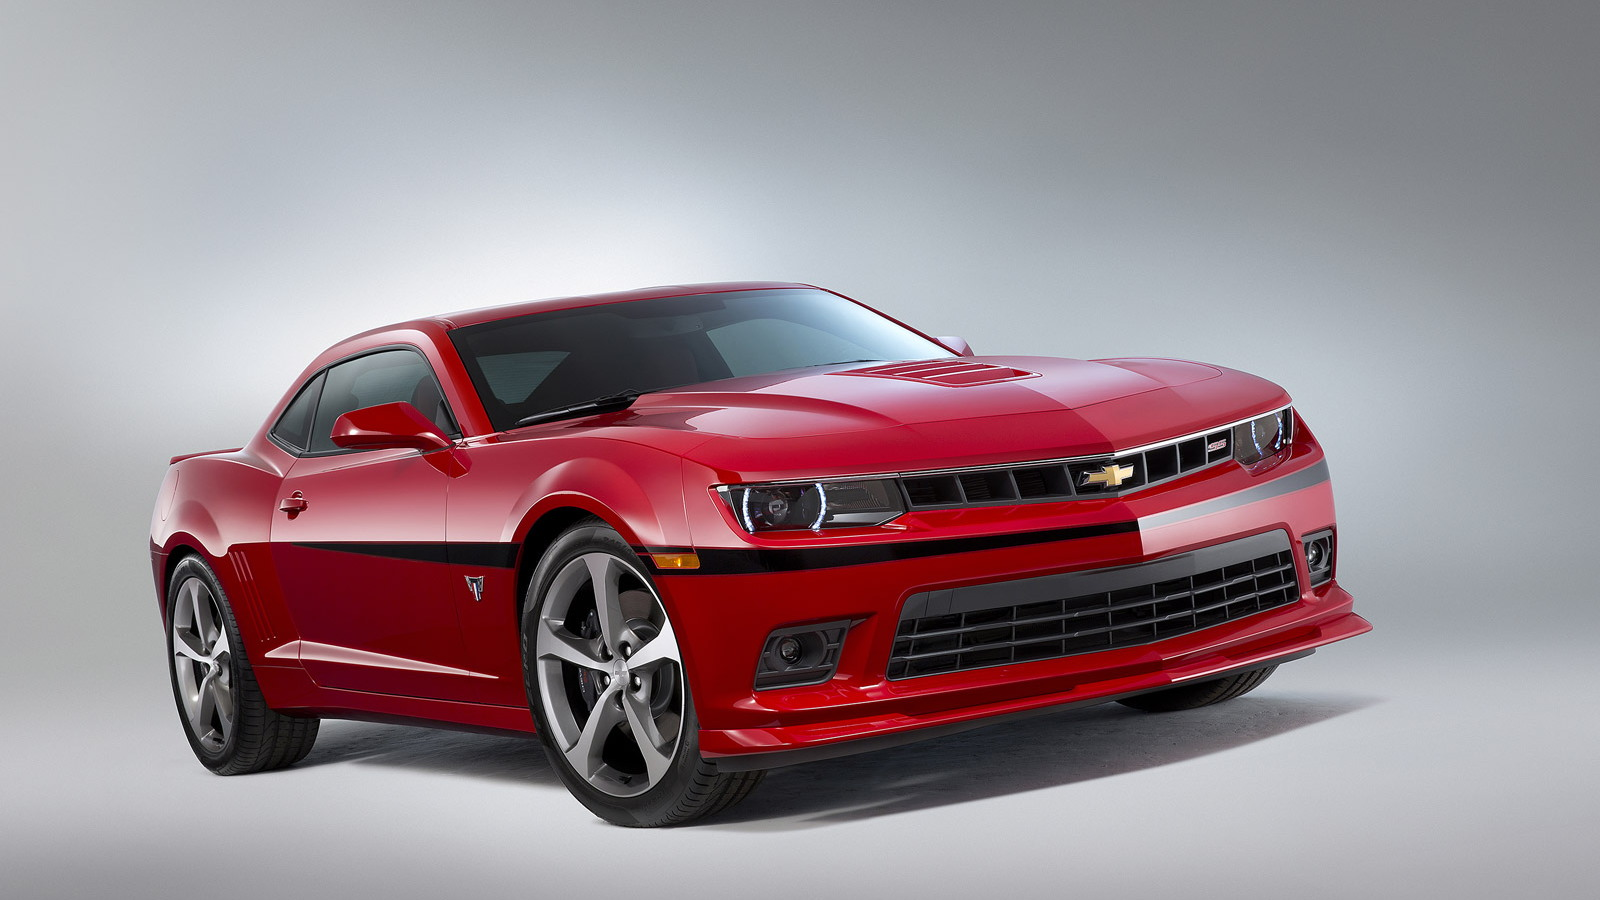 2015 Chevrolet Camaro Commemorative Edition